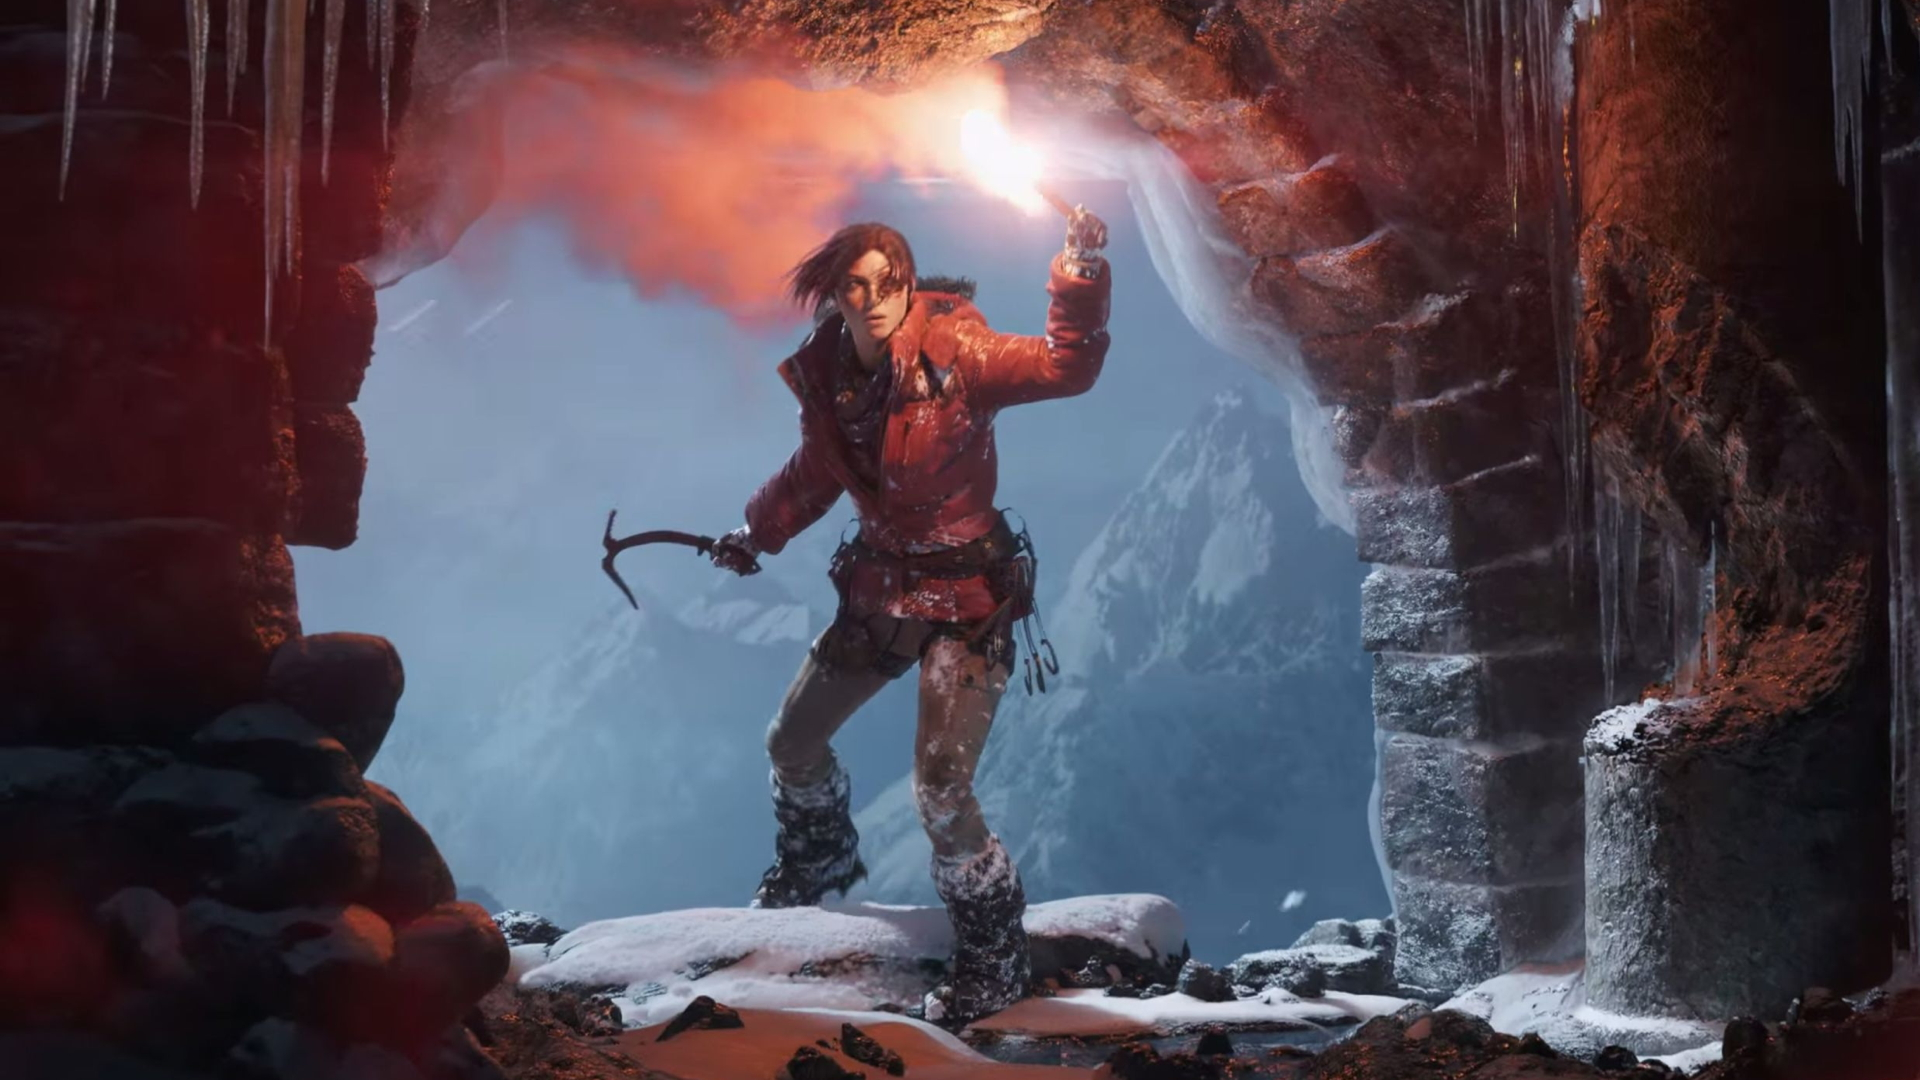 Stadia Pro gamers get Rise of the Tomb Raider and Thumper for free this January